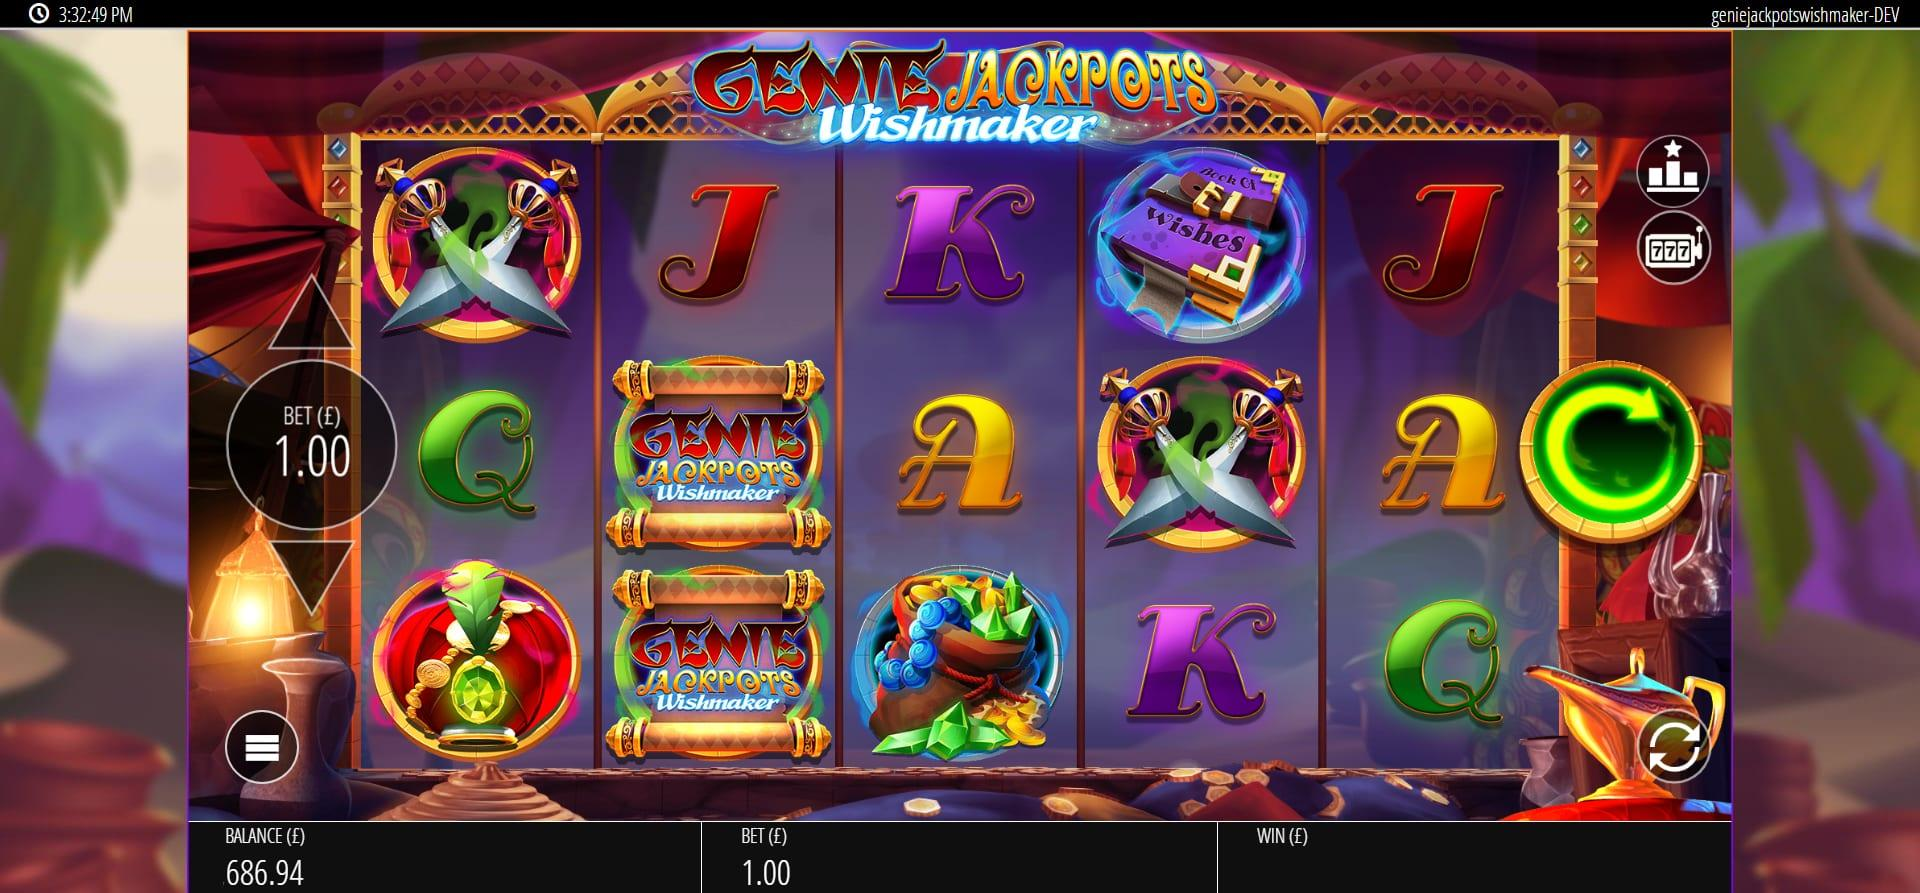 Genie Jackpots Wishmaker Symbols: Since this slot is yet to be released, we cannot say what special symbols will be included. However, there is no doubt that this game will have some amazing special symbols that will make your experience as profitable as possible.